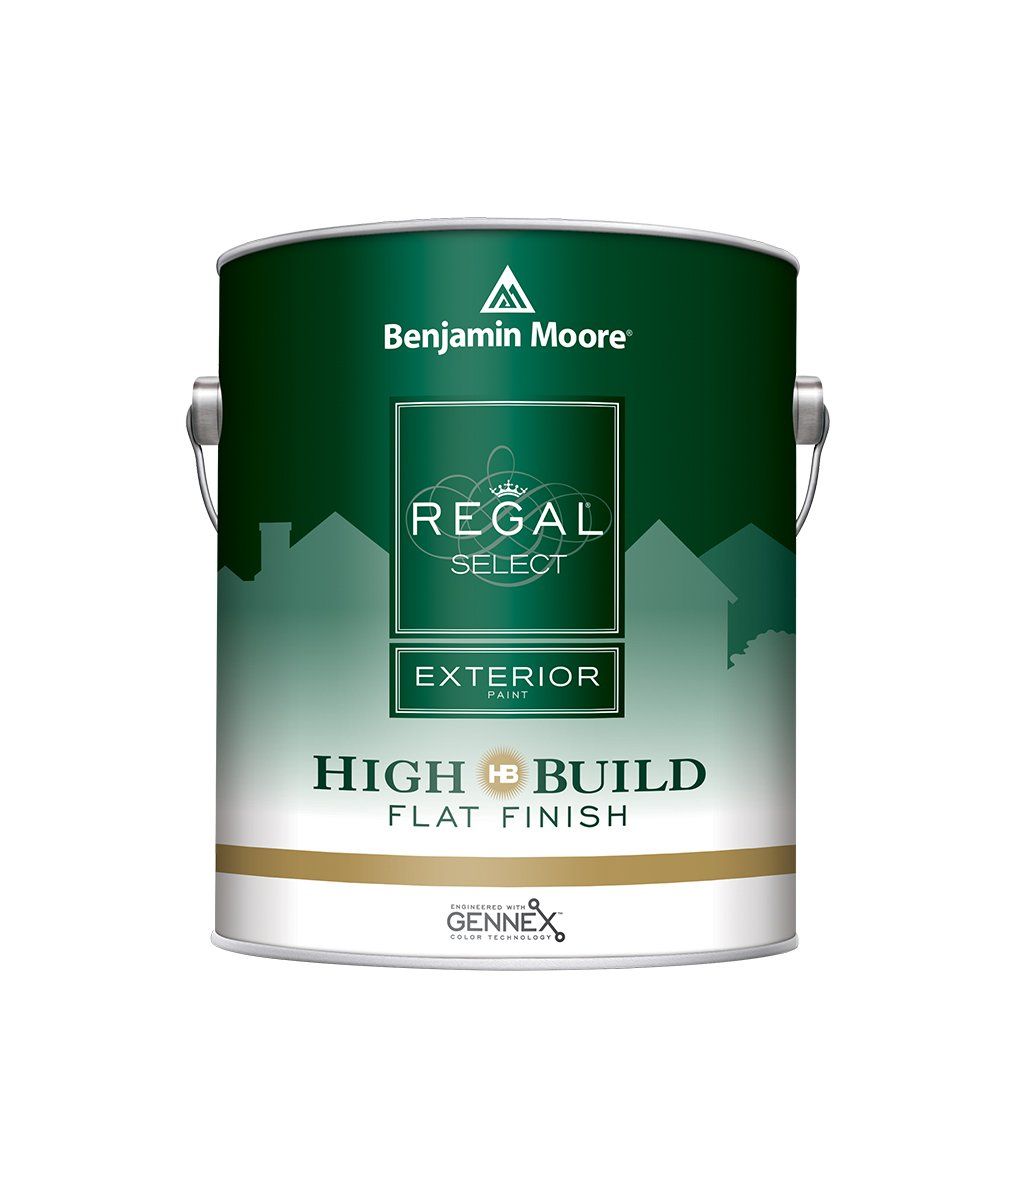 Benjamin Moore Regal® Select Exterior Paint in a Low Lustre finish at Harrison Paint Co. in Shreveport, Bossier City and West Monroe, LA.